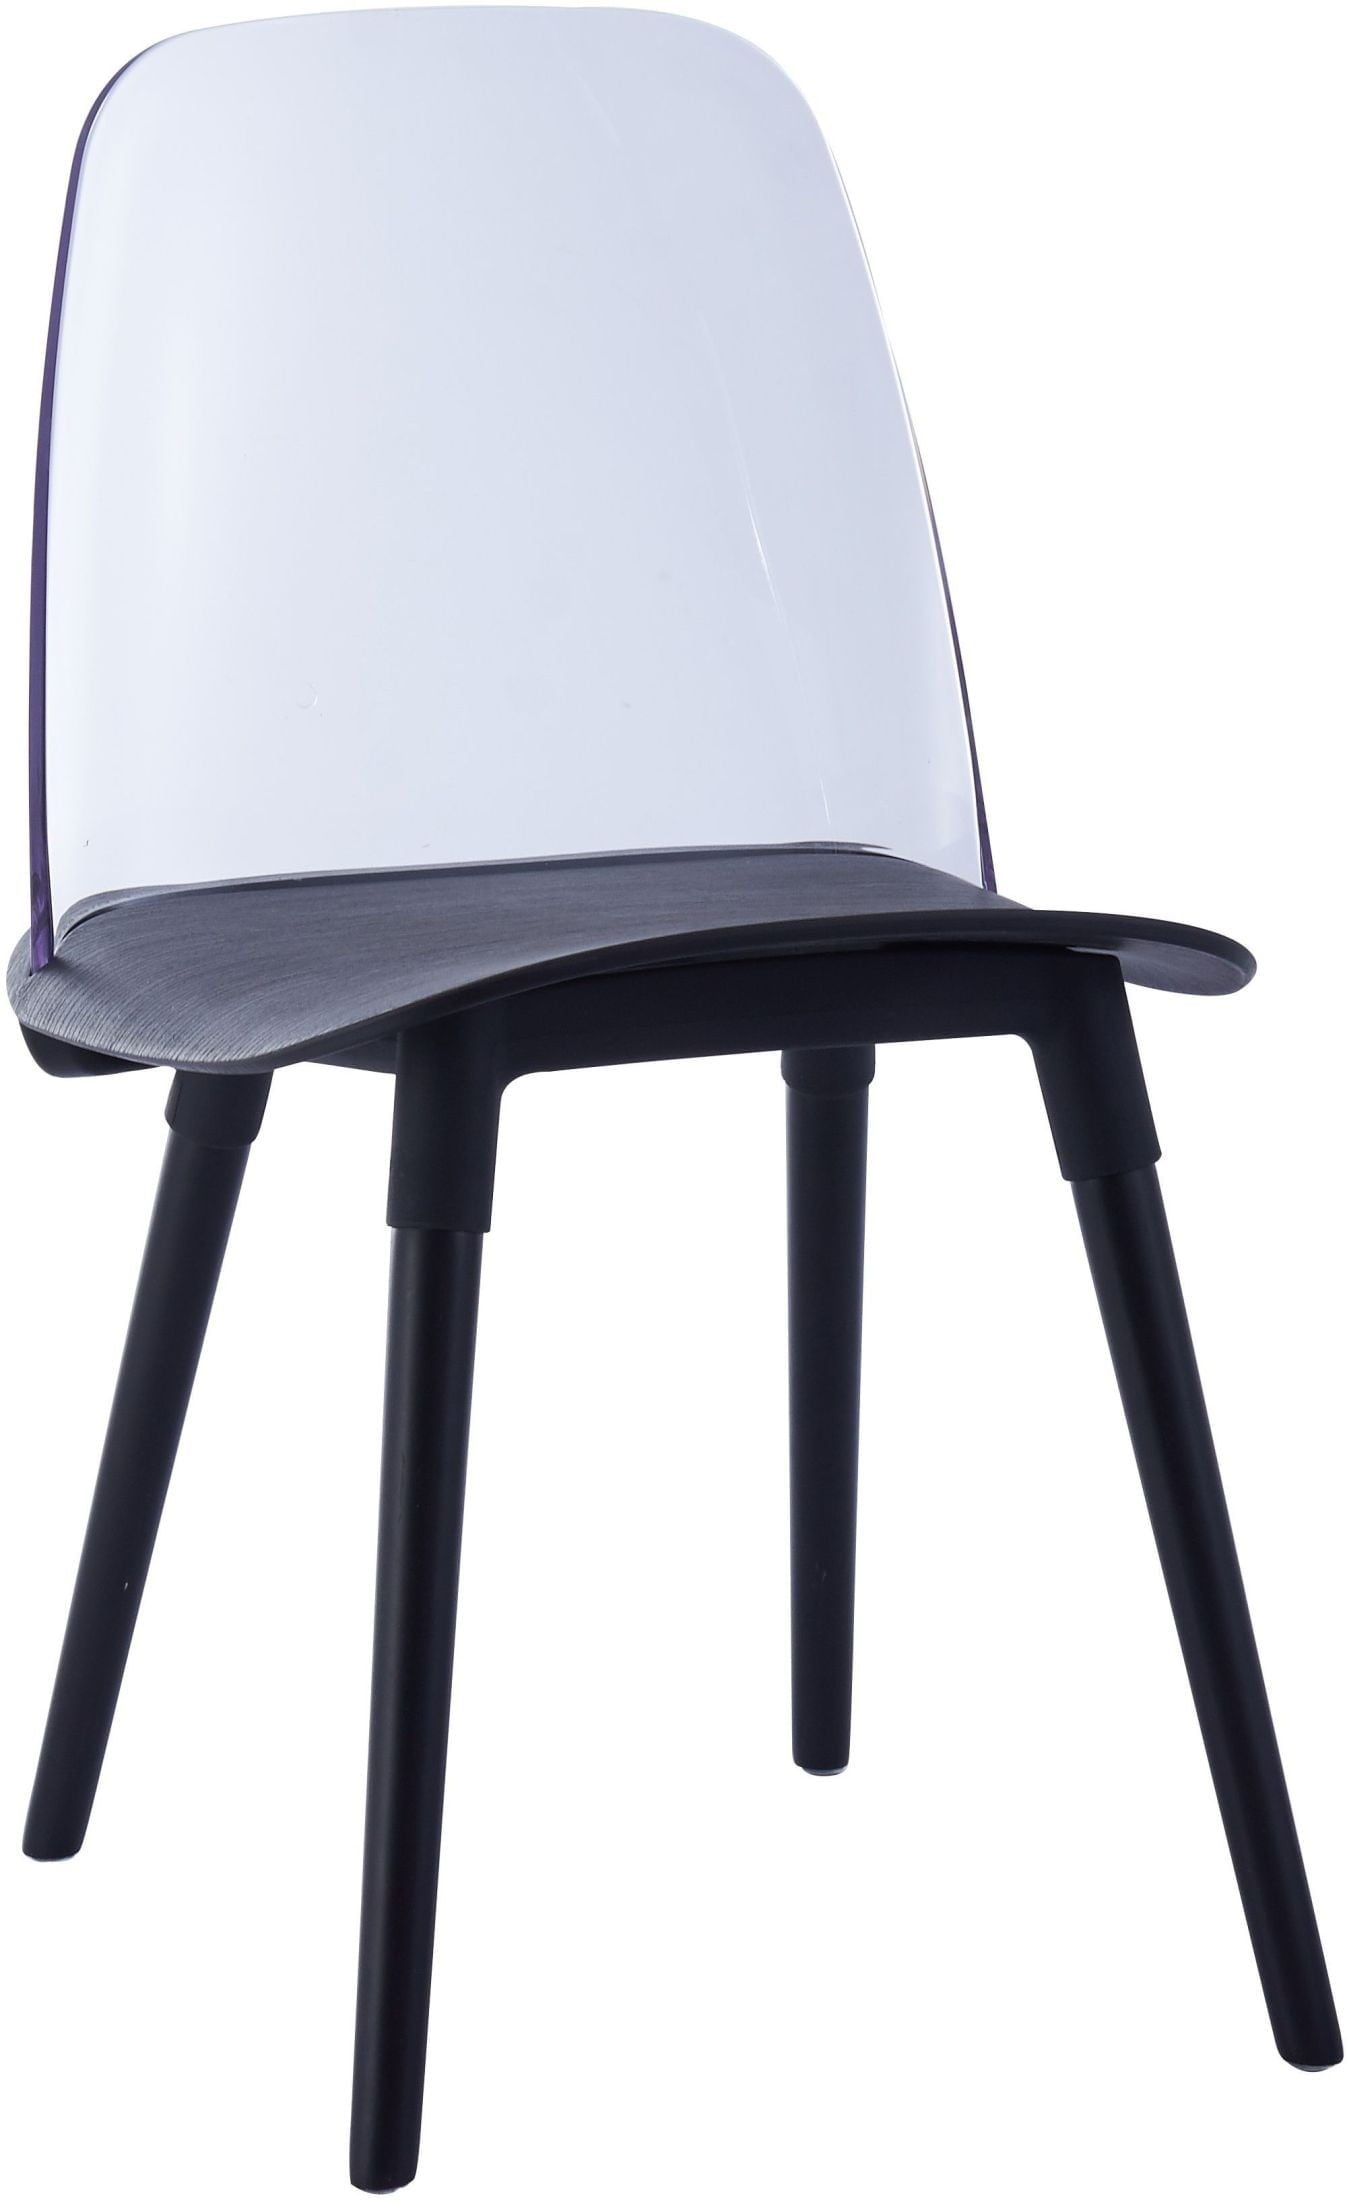 Pasha Black Acrylic Chair Set Of 2 From Tov